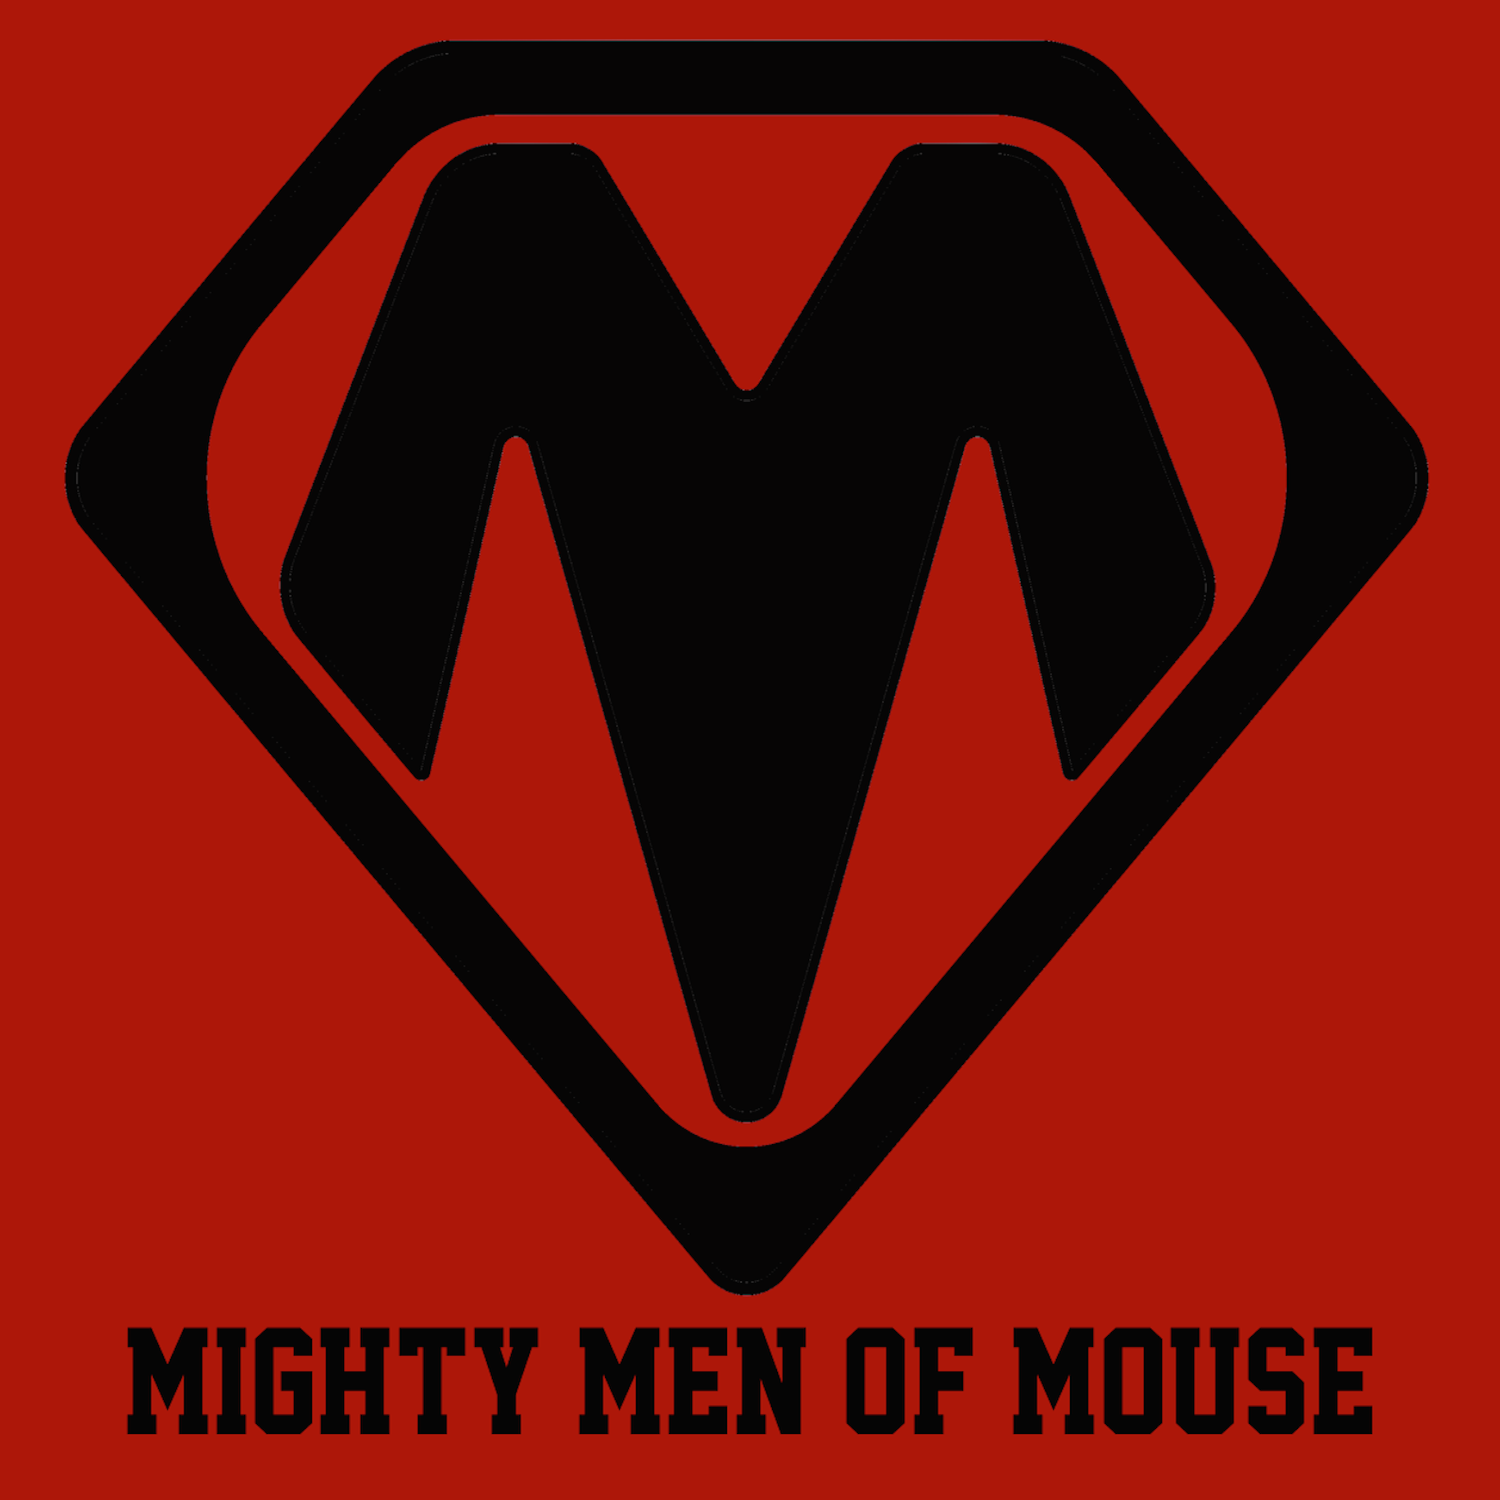 Mighty Men of Mouse logo